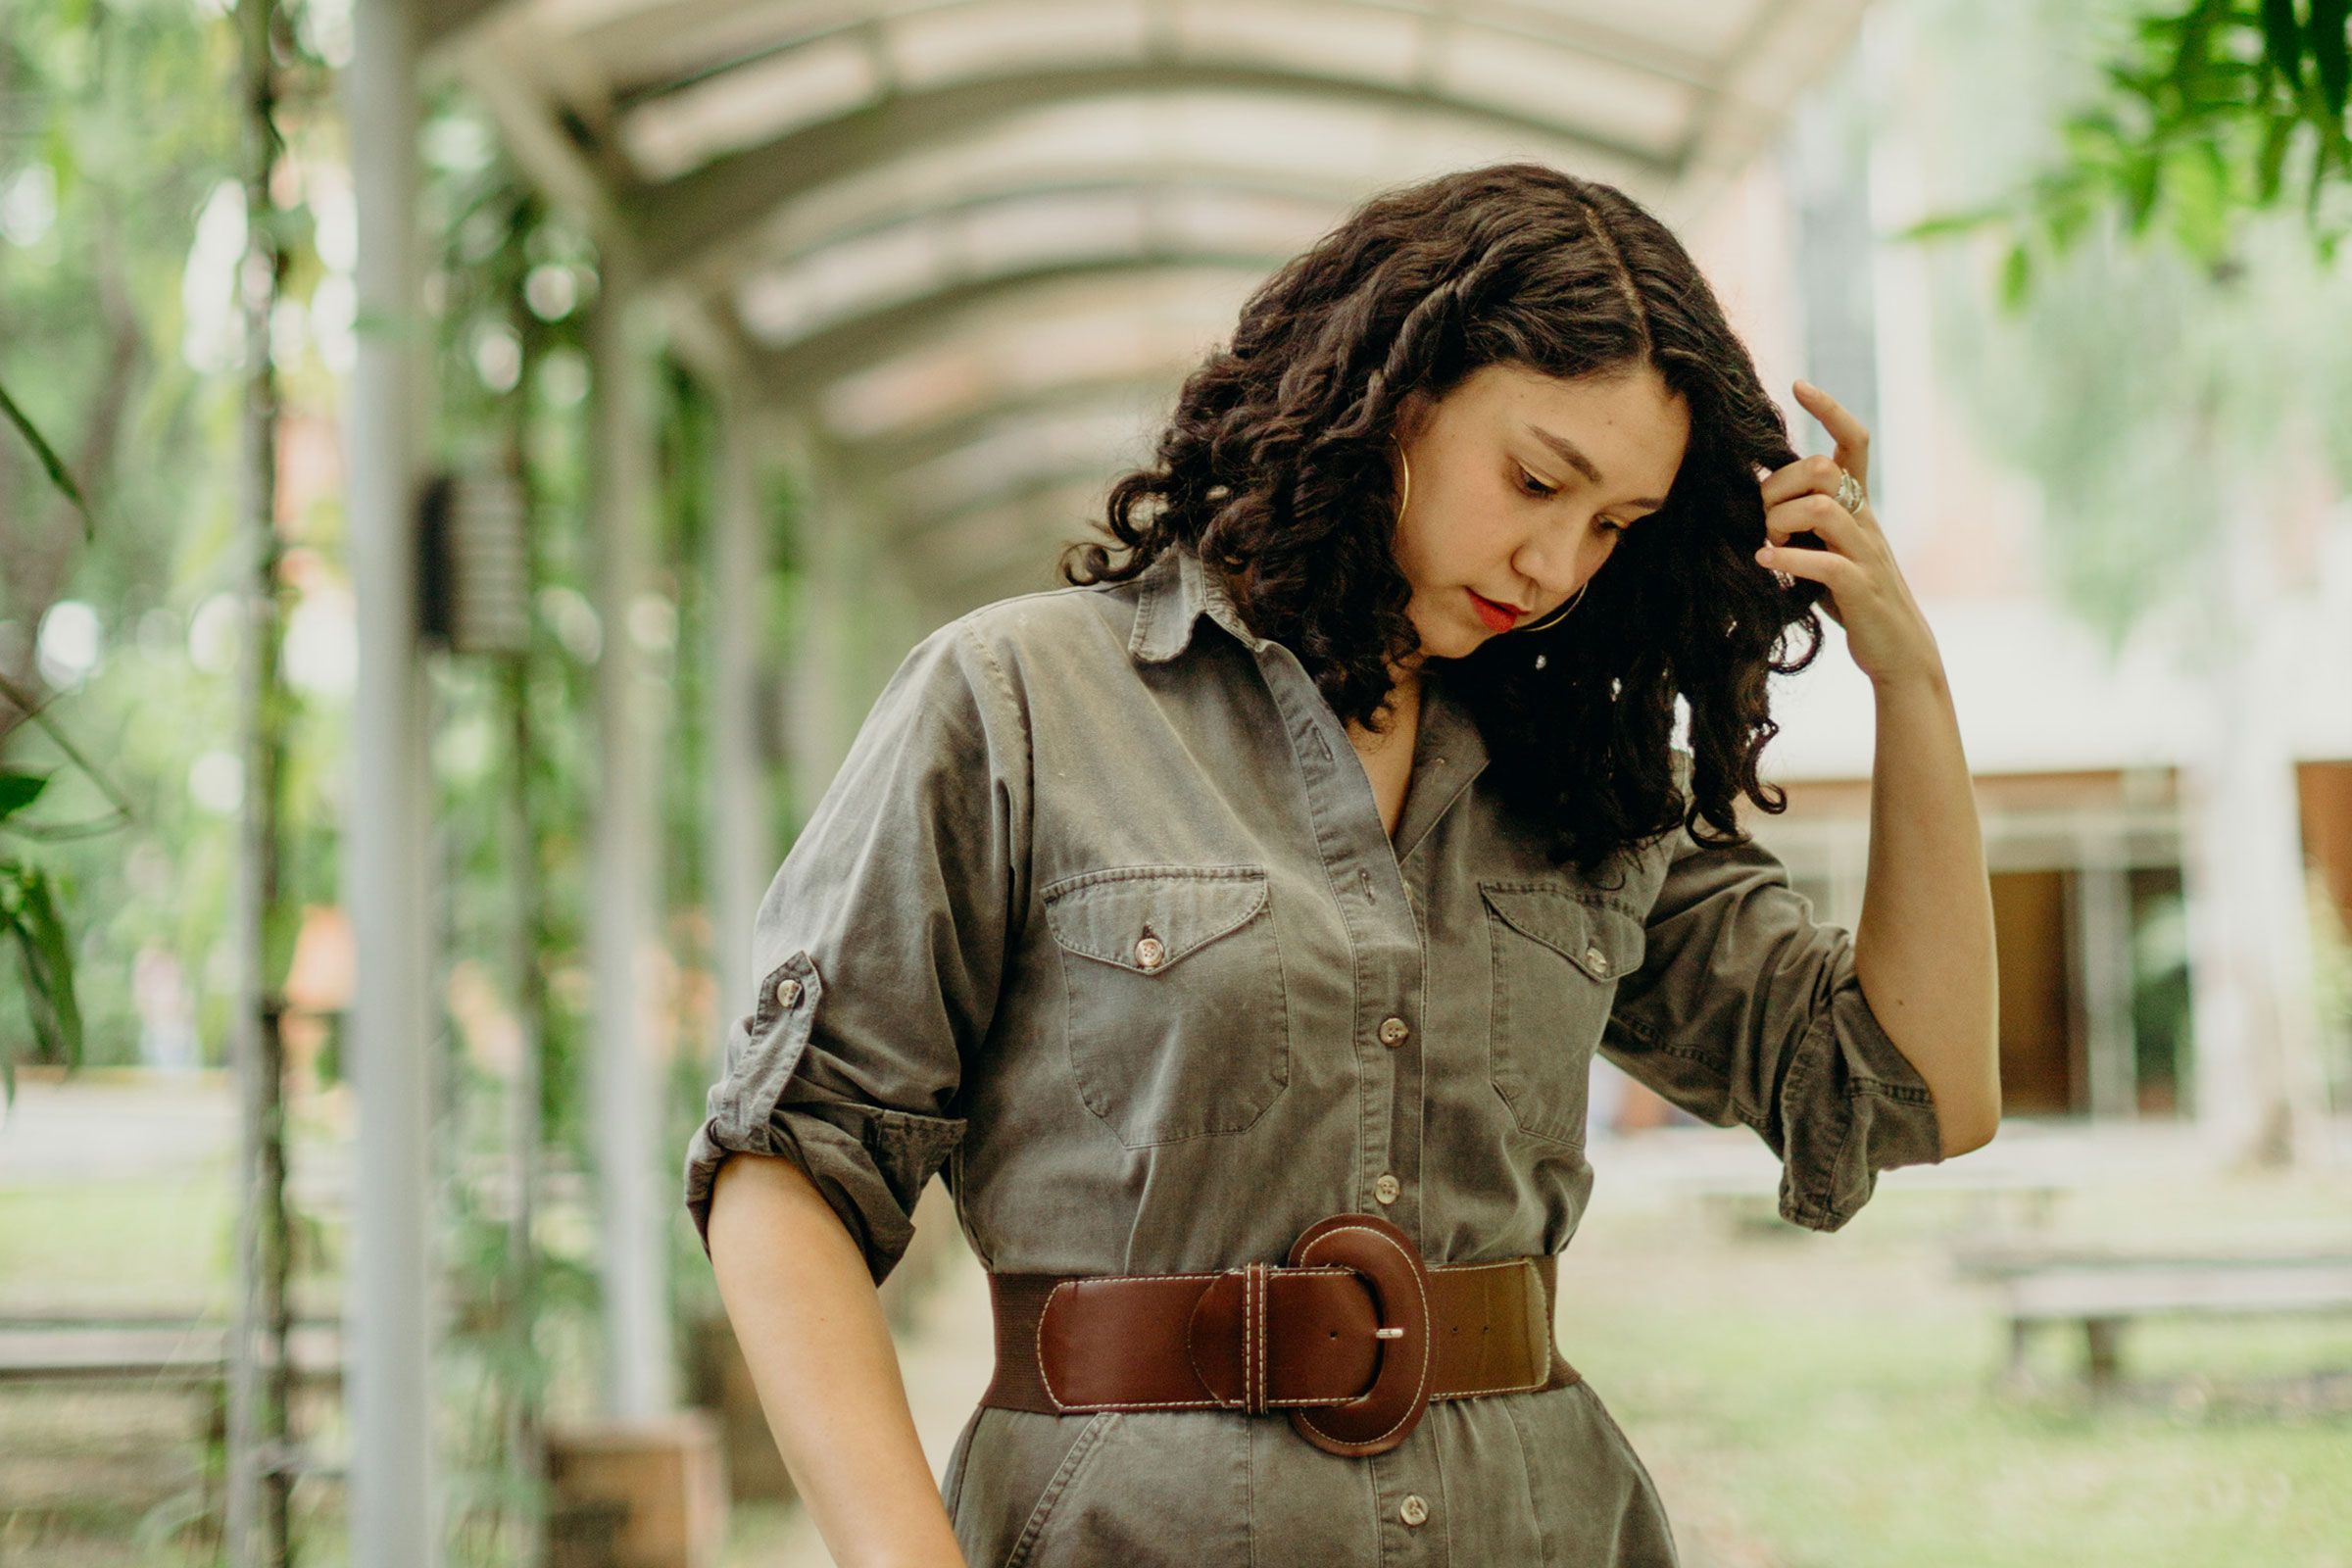 A woman dressed in an olive green button down shirt looking down